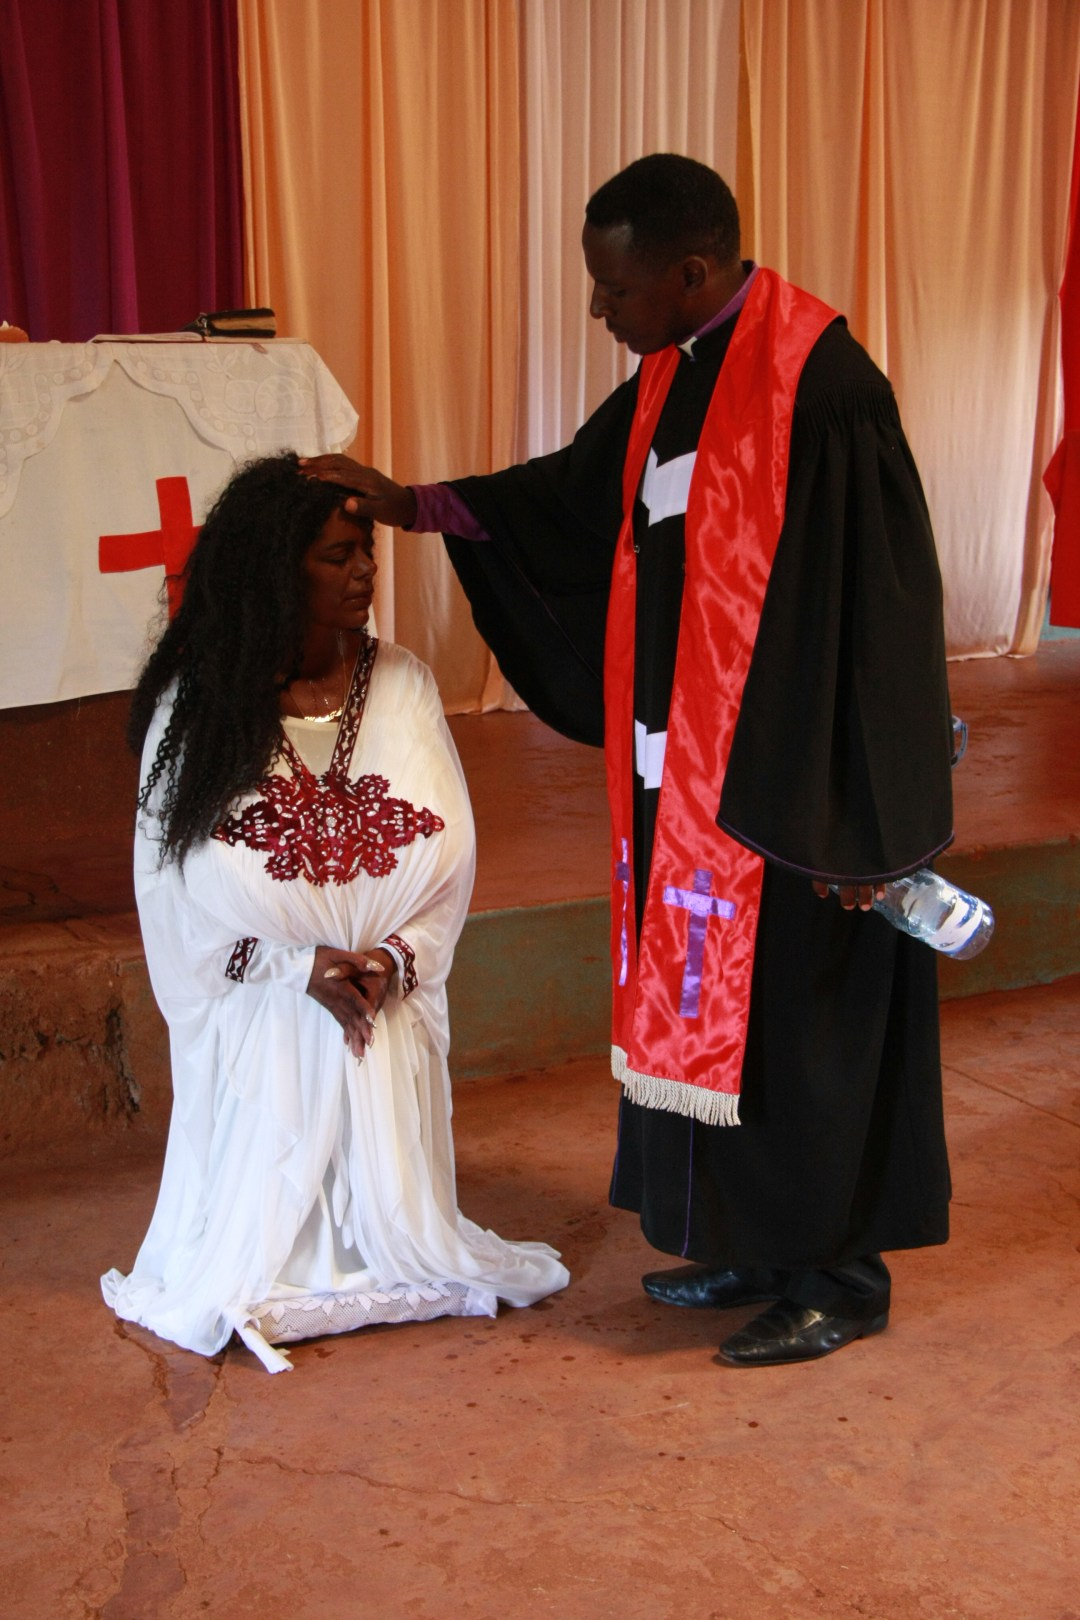 Martina is also known as Malaika Kubwa following her baptism